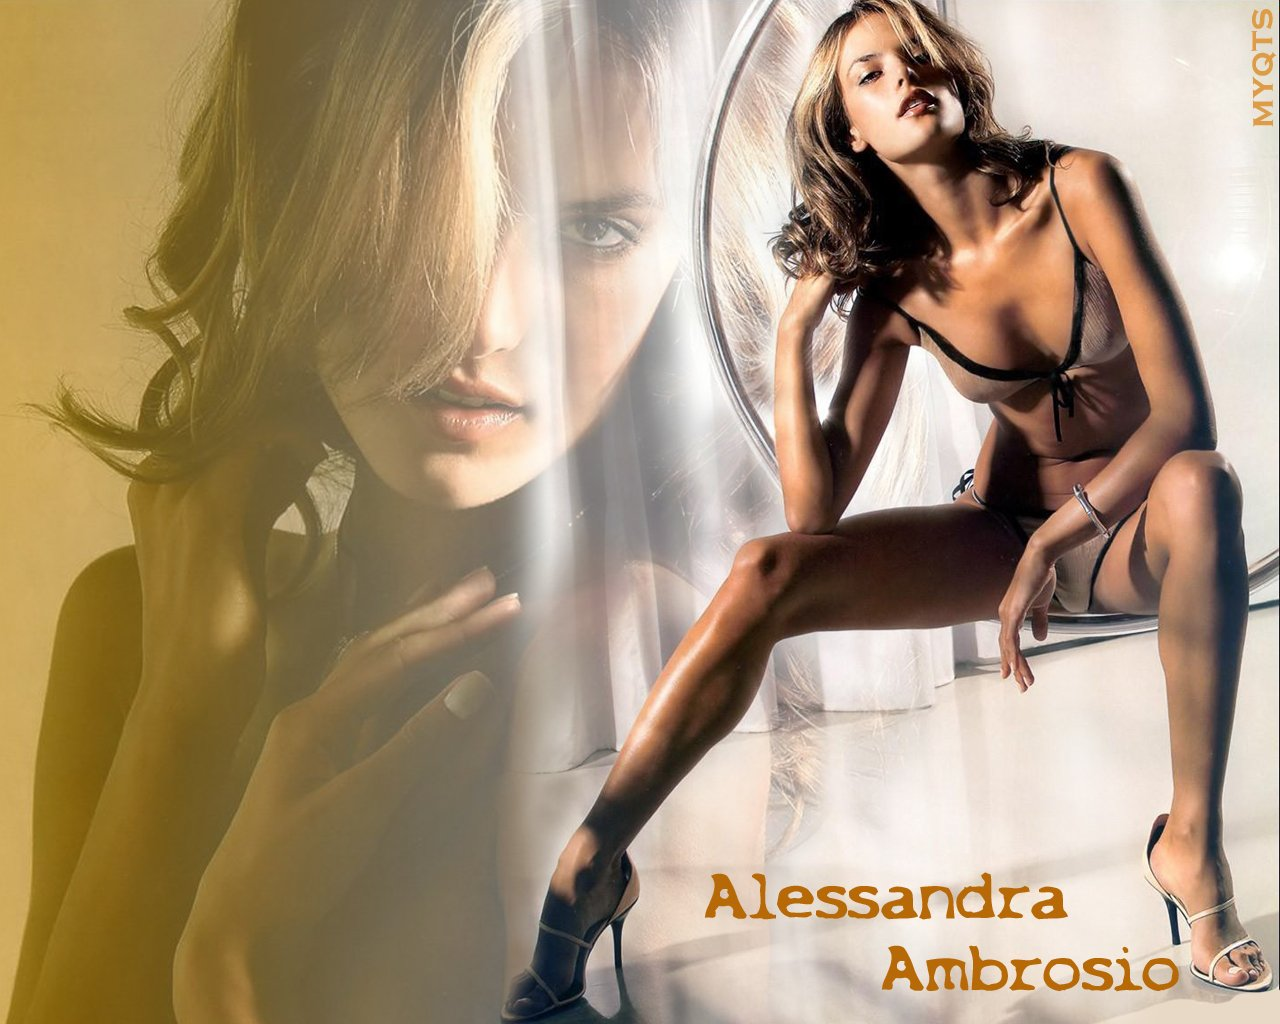 ambrosio Hot Supermodels Lingerie Models